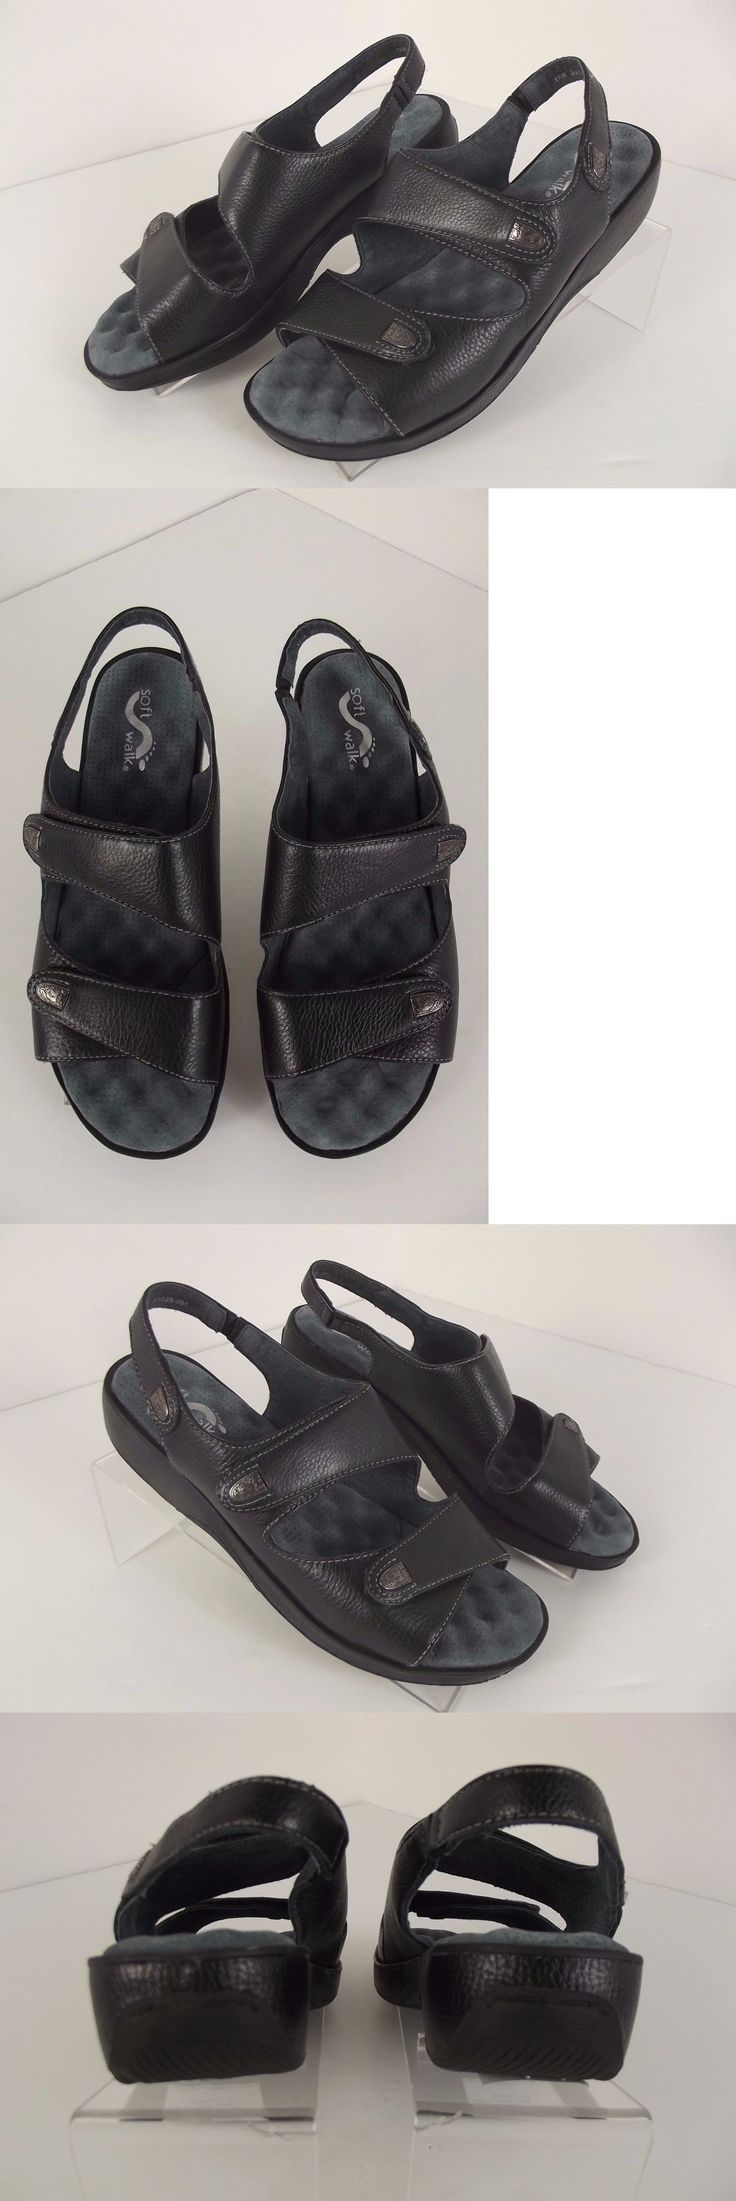 Women Shoes: New Soft Walk Black Bolivia Sandals Women S Size 10 M Shoes Leather Slingback -> BUY IT NOW ONLY: $44.5 on eBay!